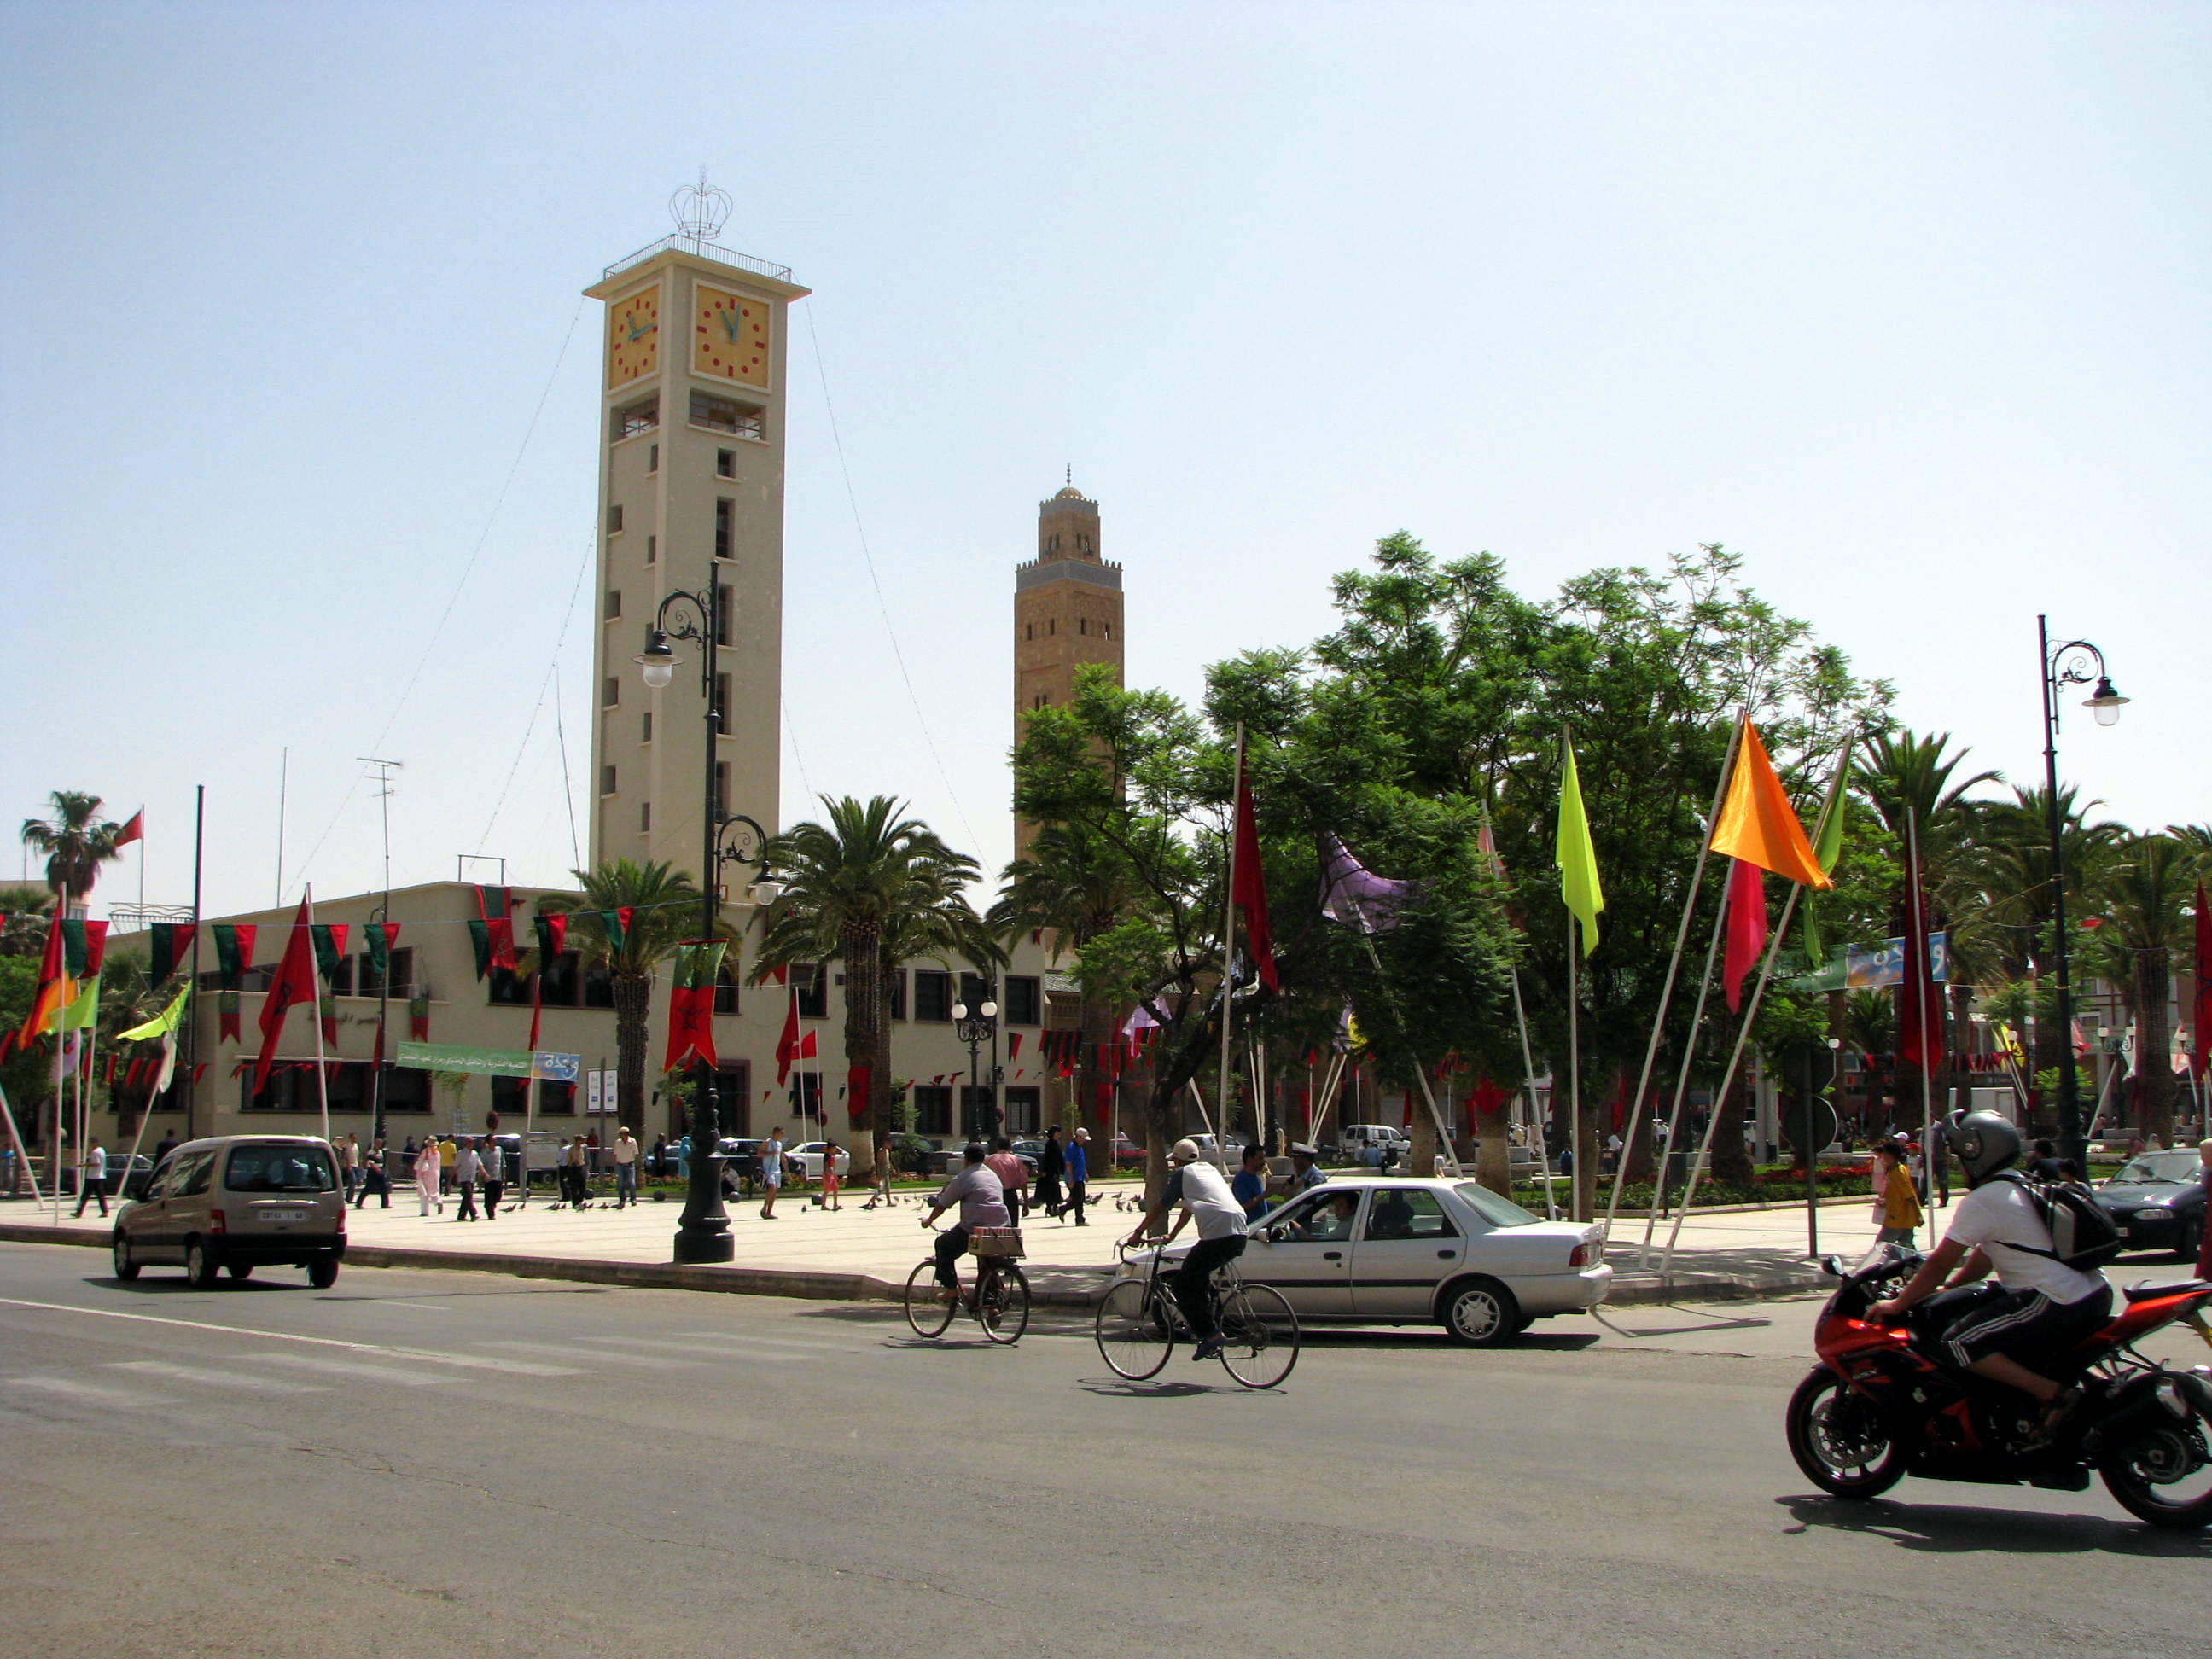 File:Oujda.mosque marie et place.jpg - Wikipedia, the free ...